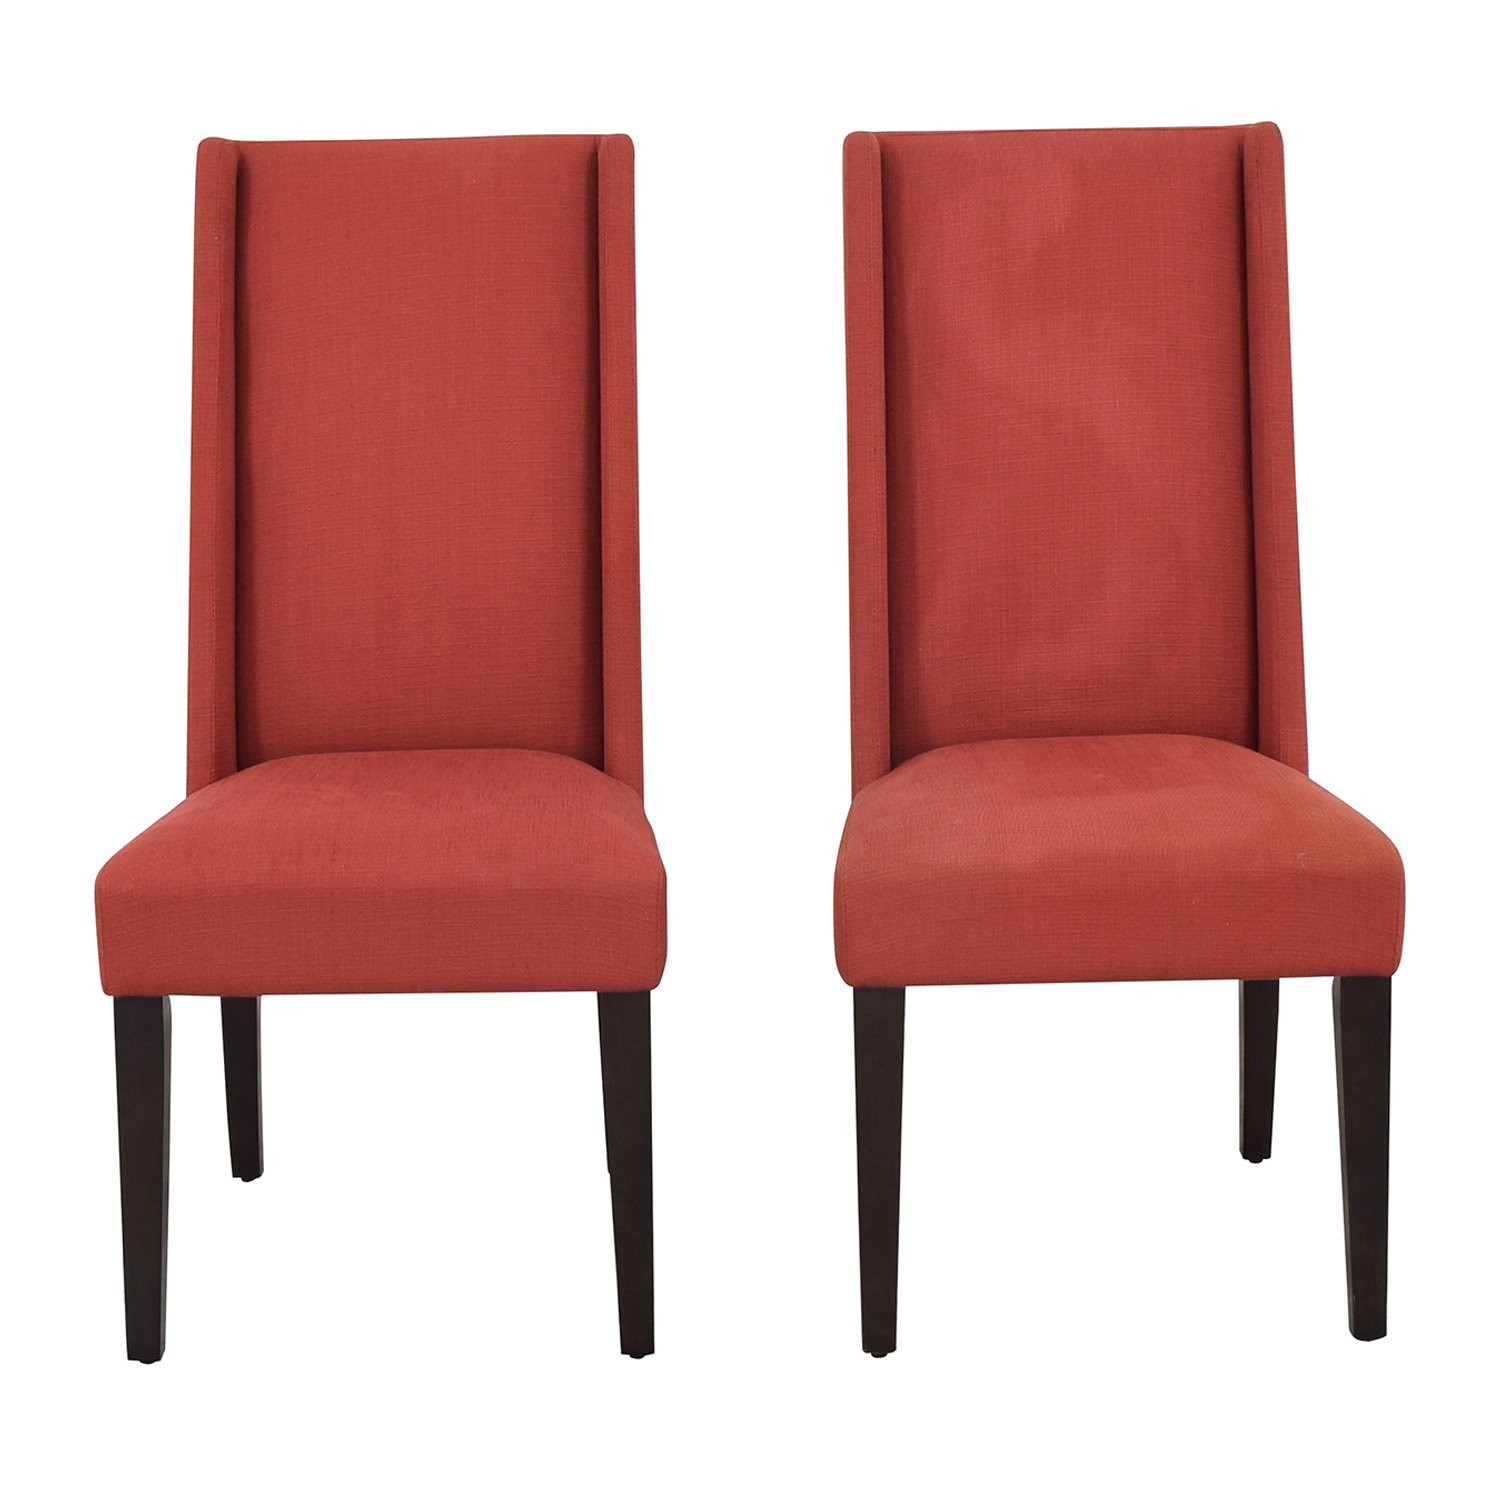 West Elm West Elm Willoughby Dining Chairs Dining Chairs